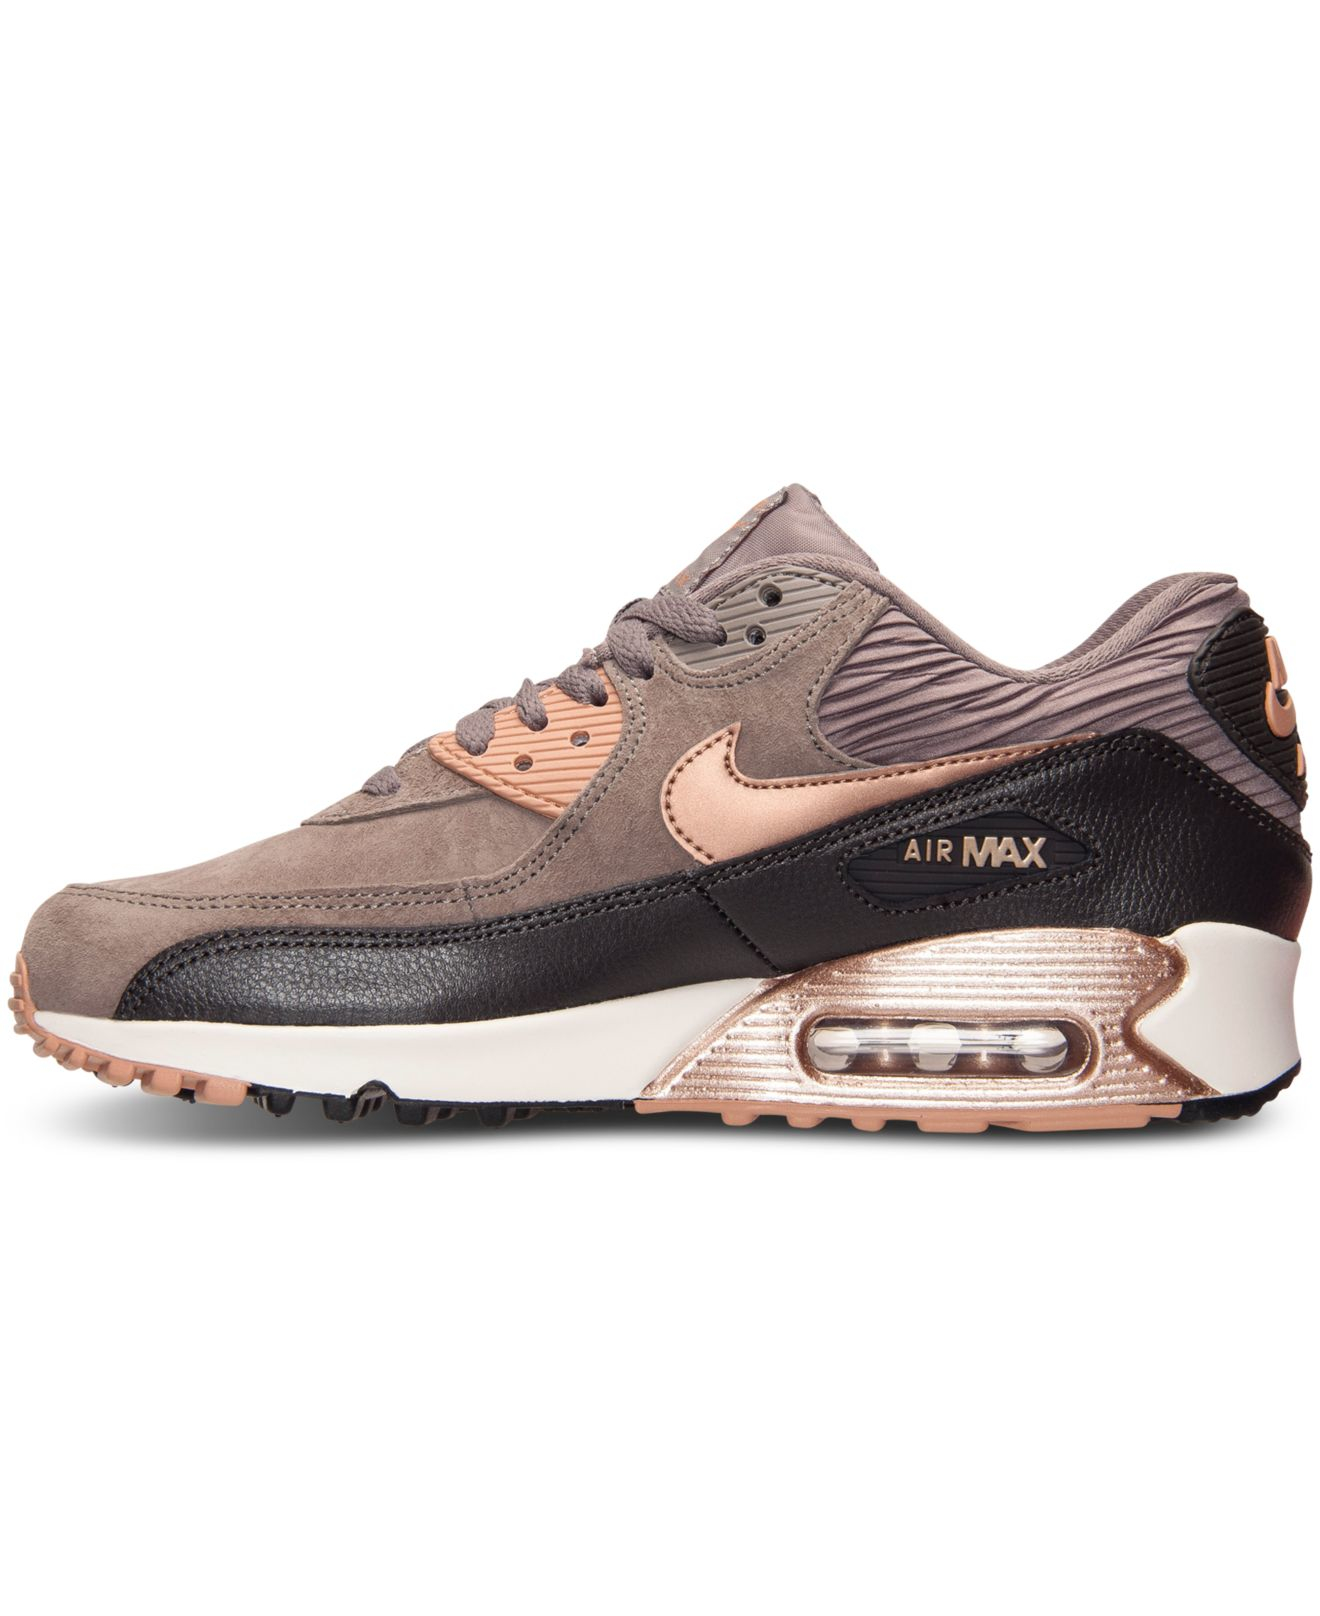 Lyst - Nike Women s Air Max 90 Leather Running Sneakers From Finish ... a92e6bca1